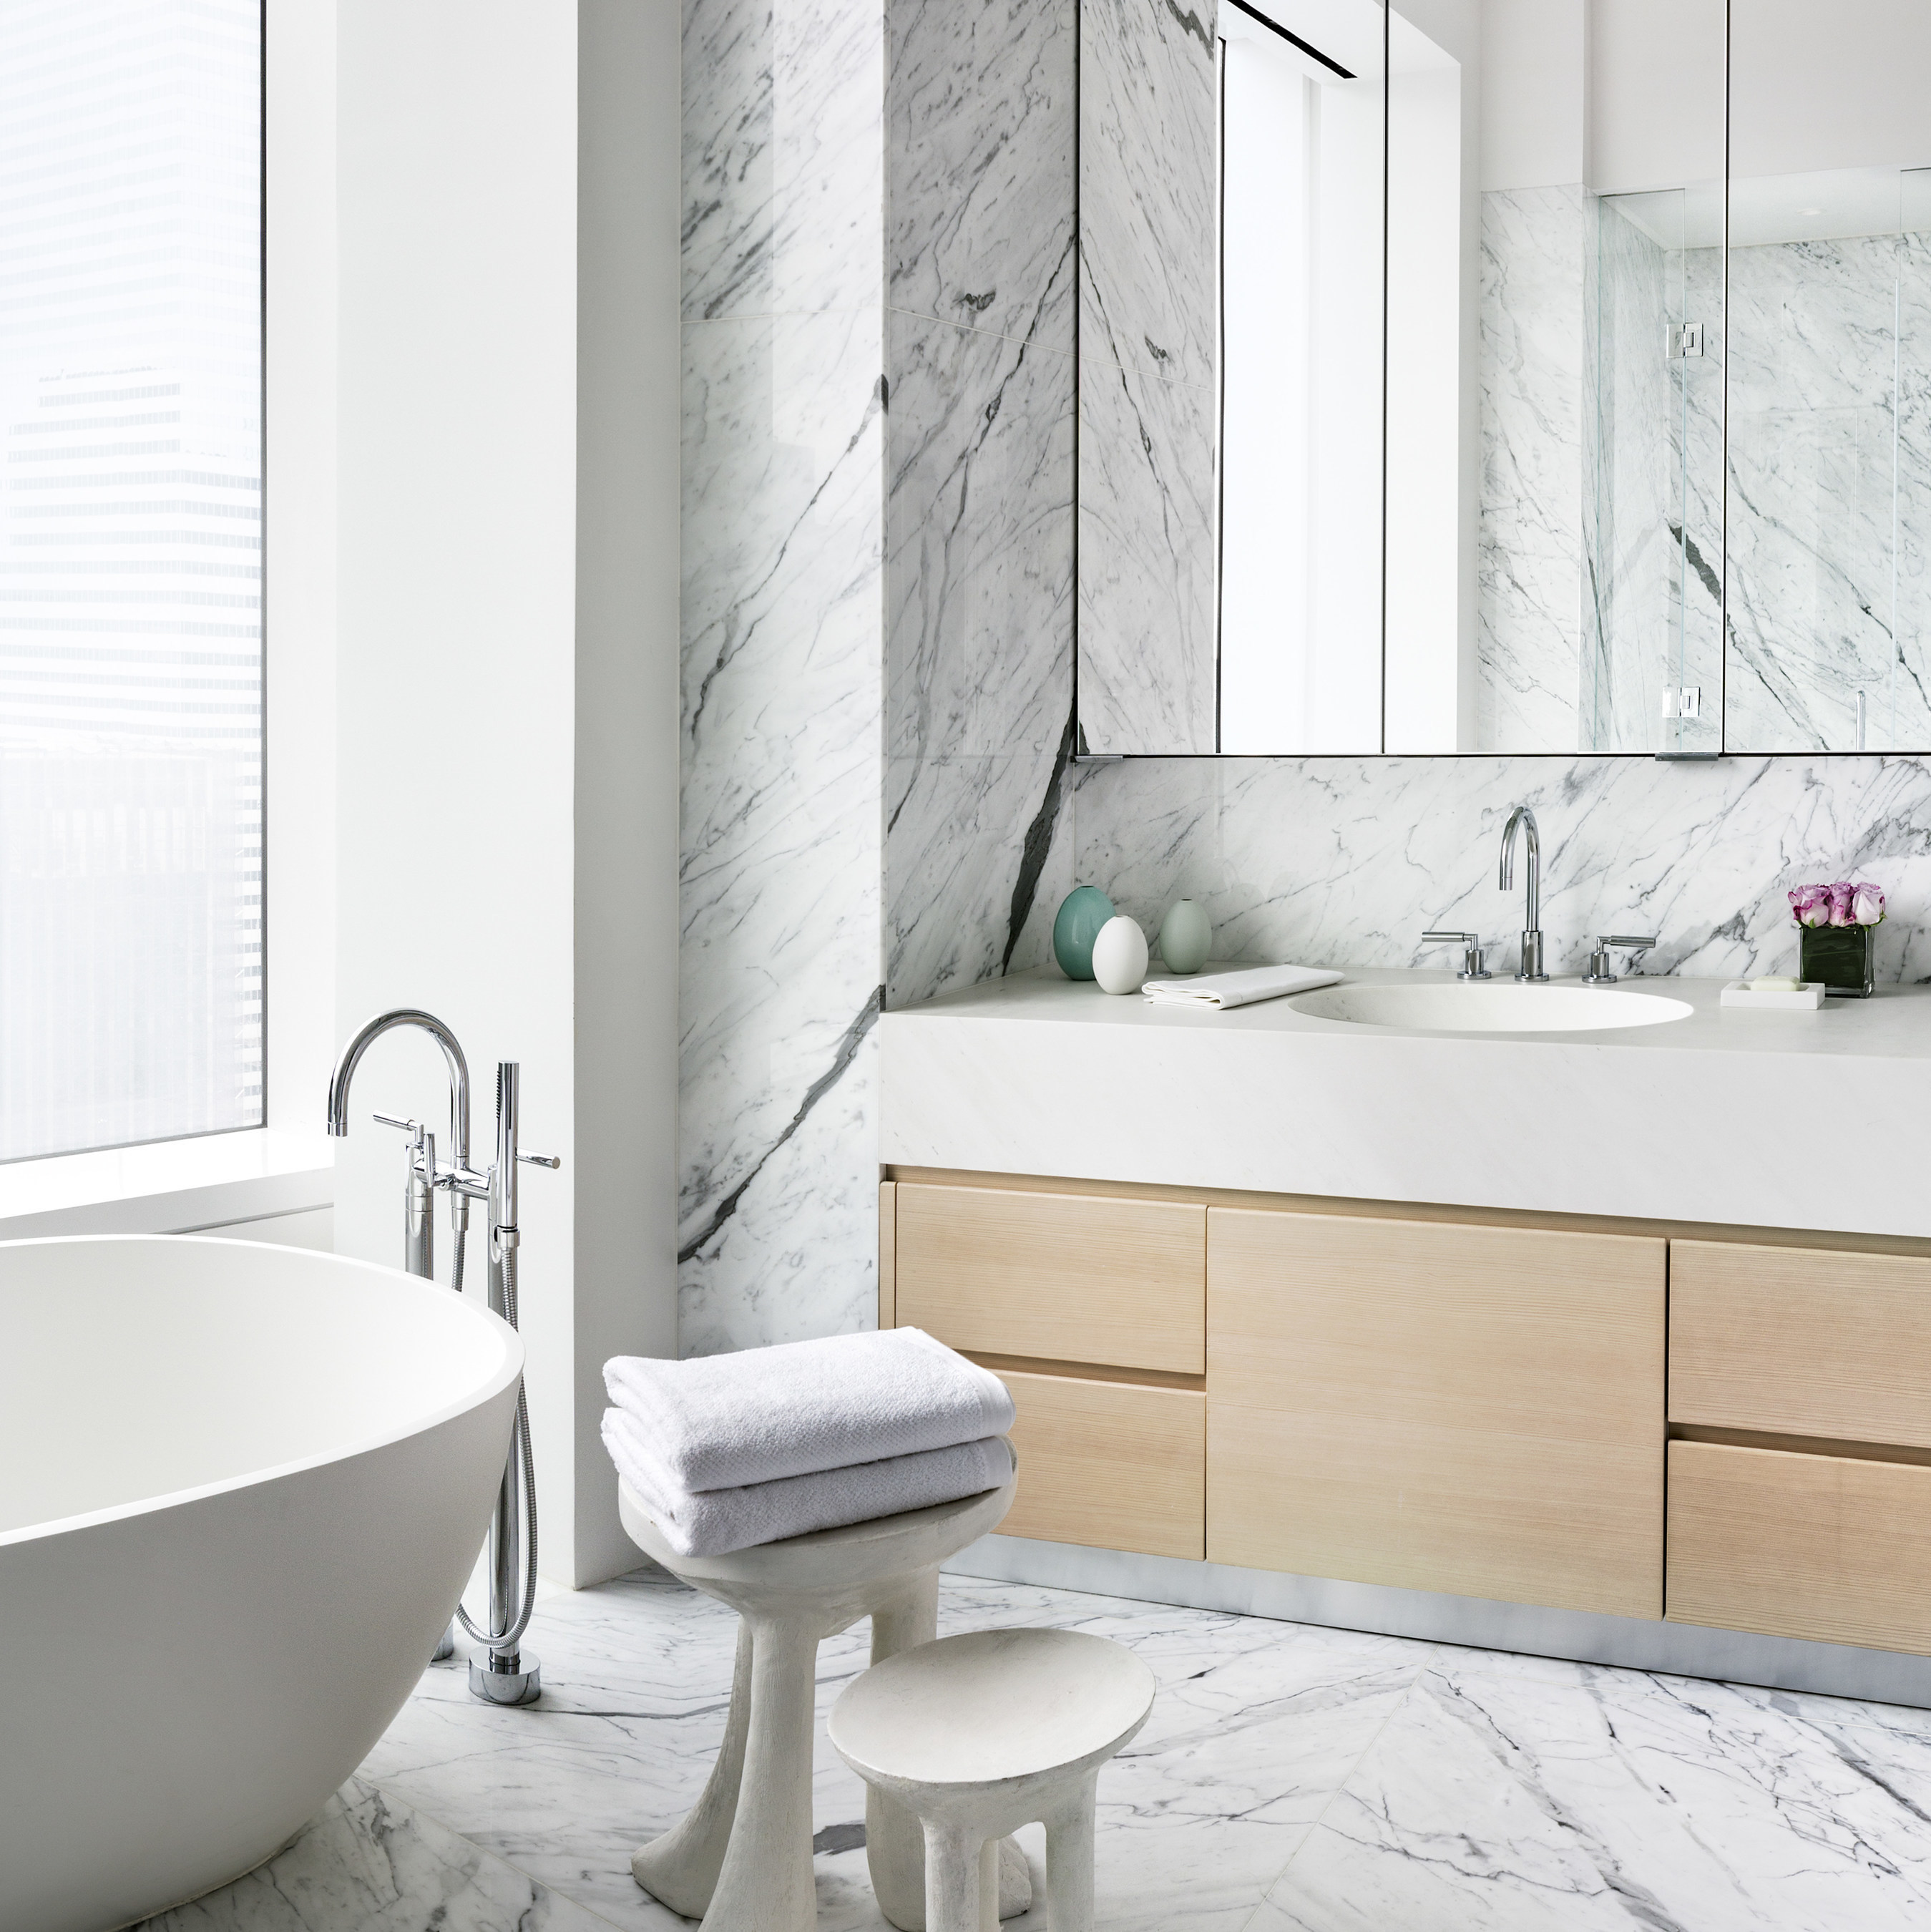 Bathroom in the model residence at 432 Park Avenue. Photo by Scott Frances for CIM Group & Macklowe Properties.